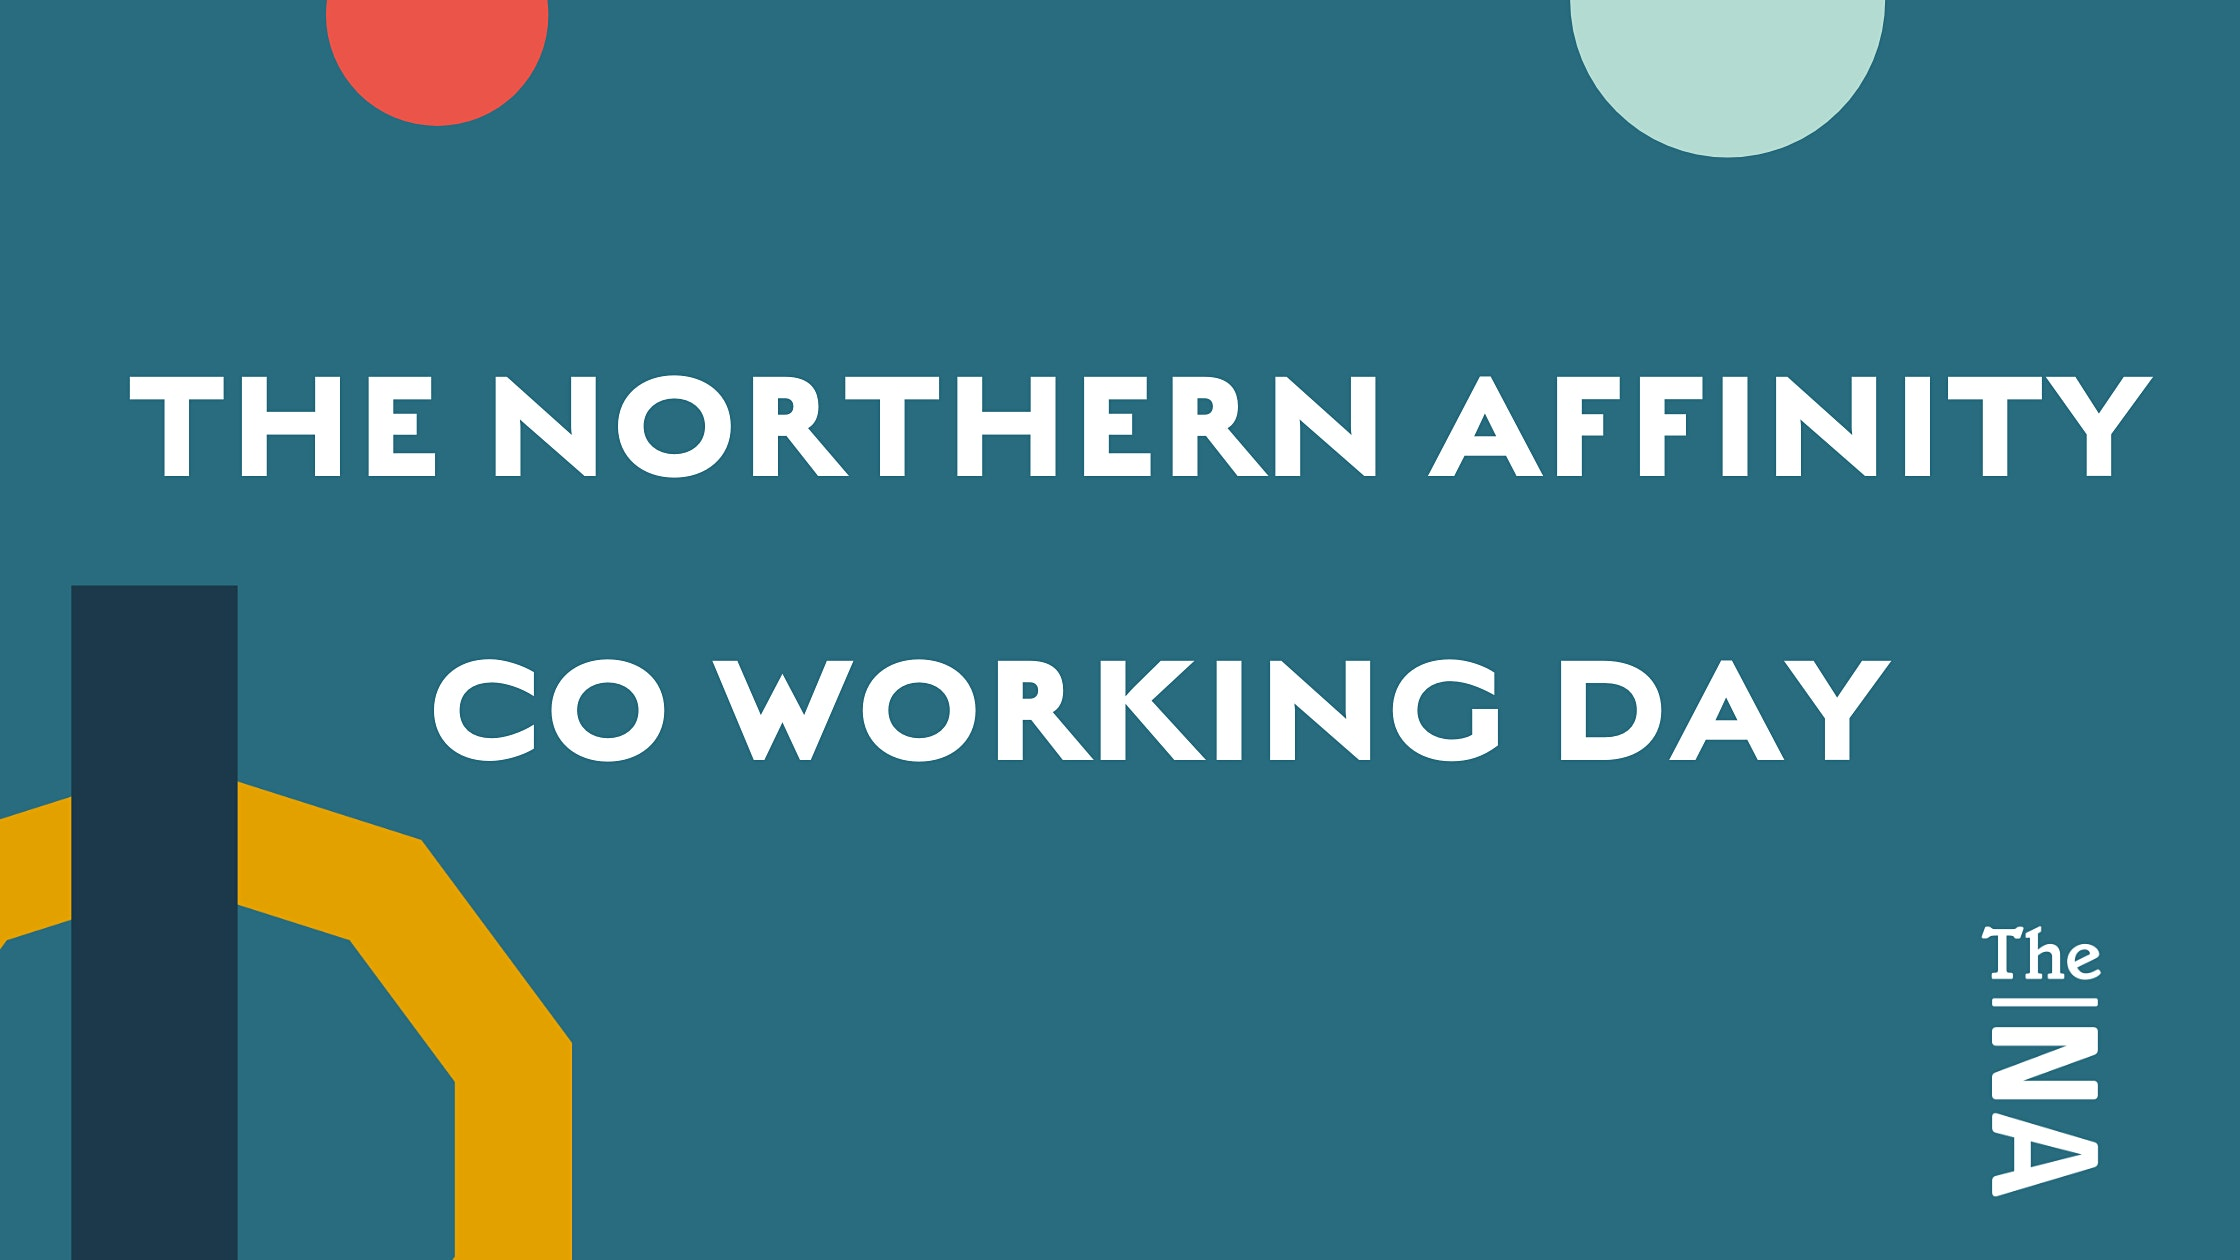 The Northern Affinity Co Working Day @ Clockwise Liverpool